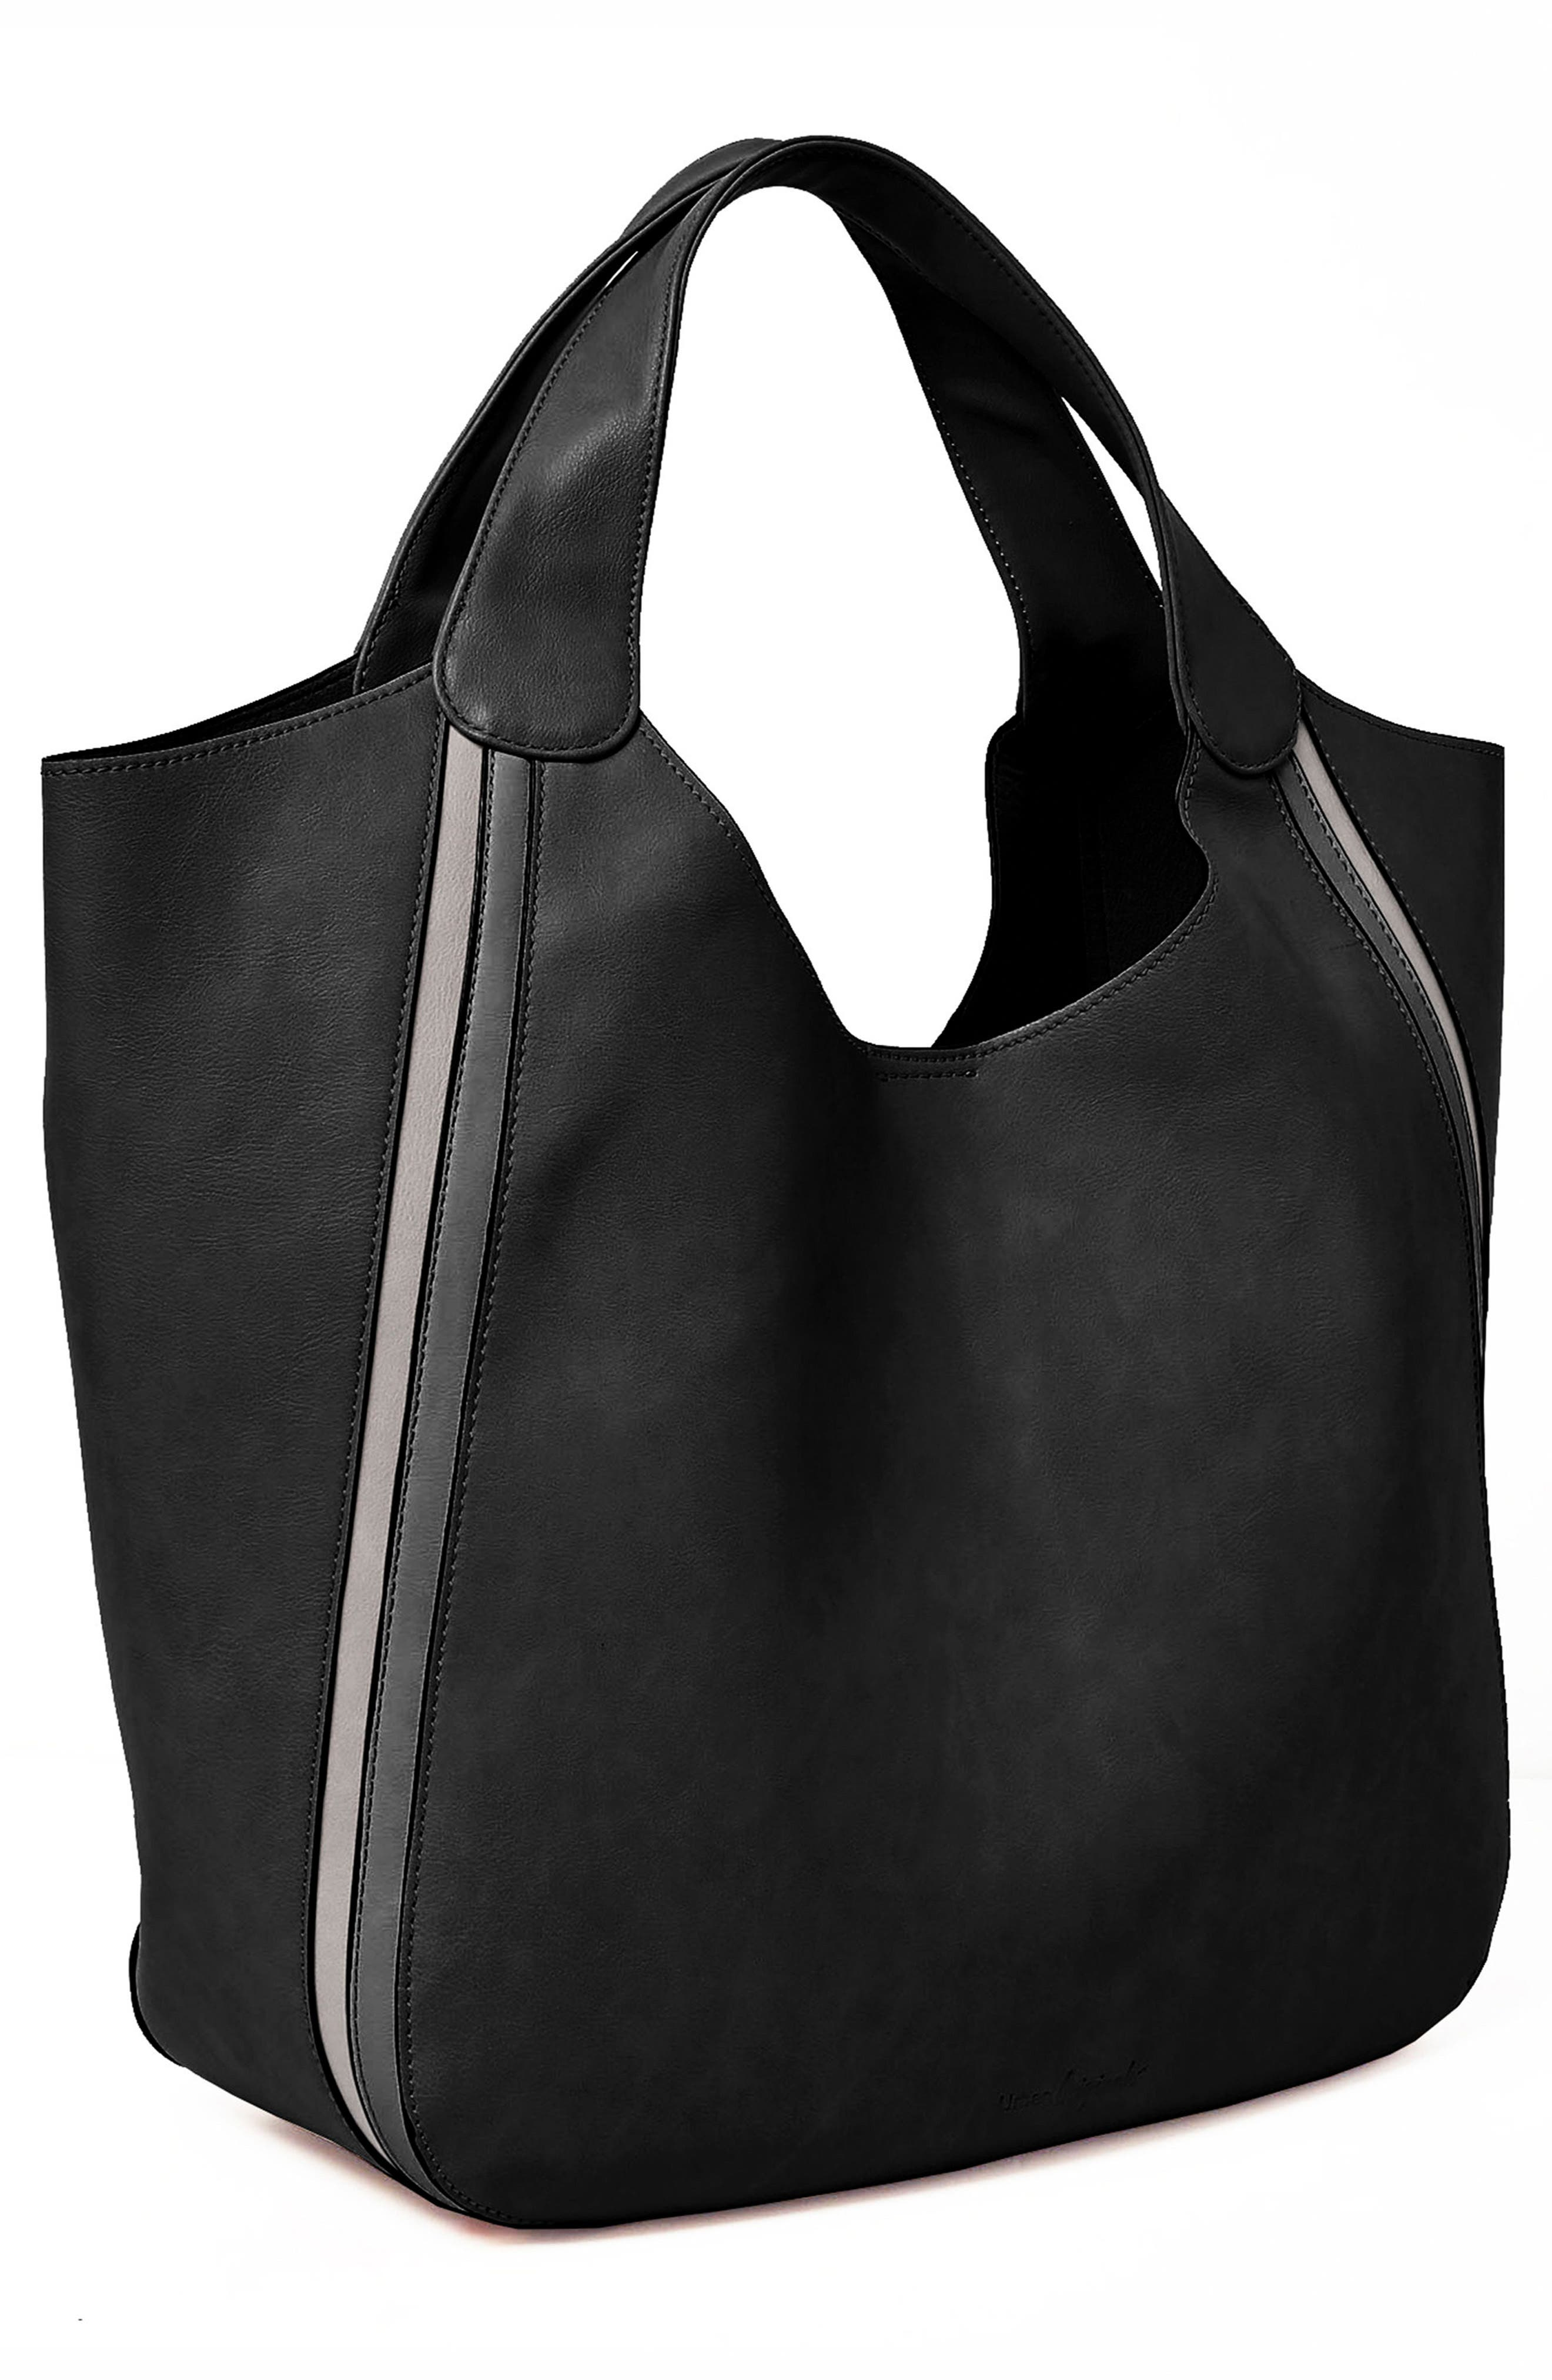 Viva Vegan Leather Tote with Removable Zip Pouch,                             Alternate thumbnail 3, color,                             Black